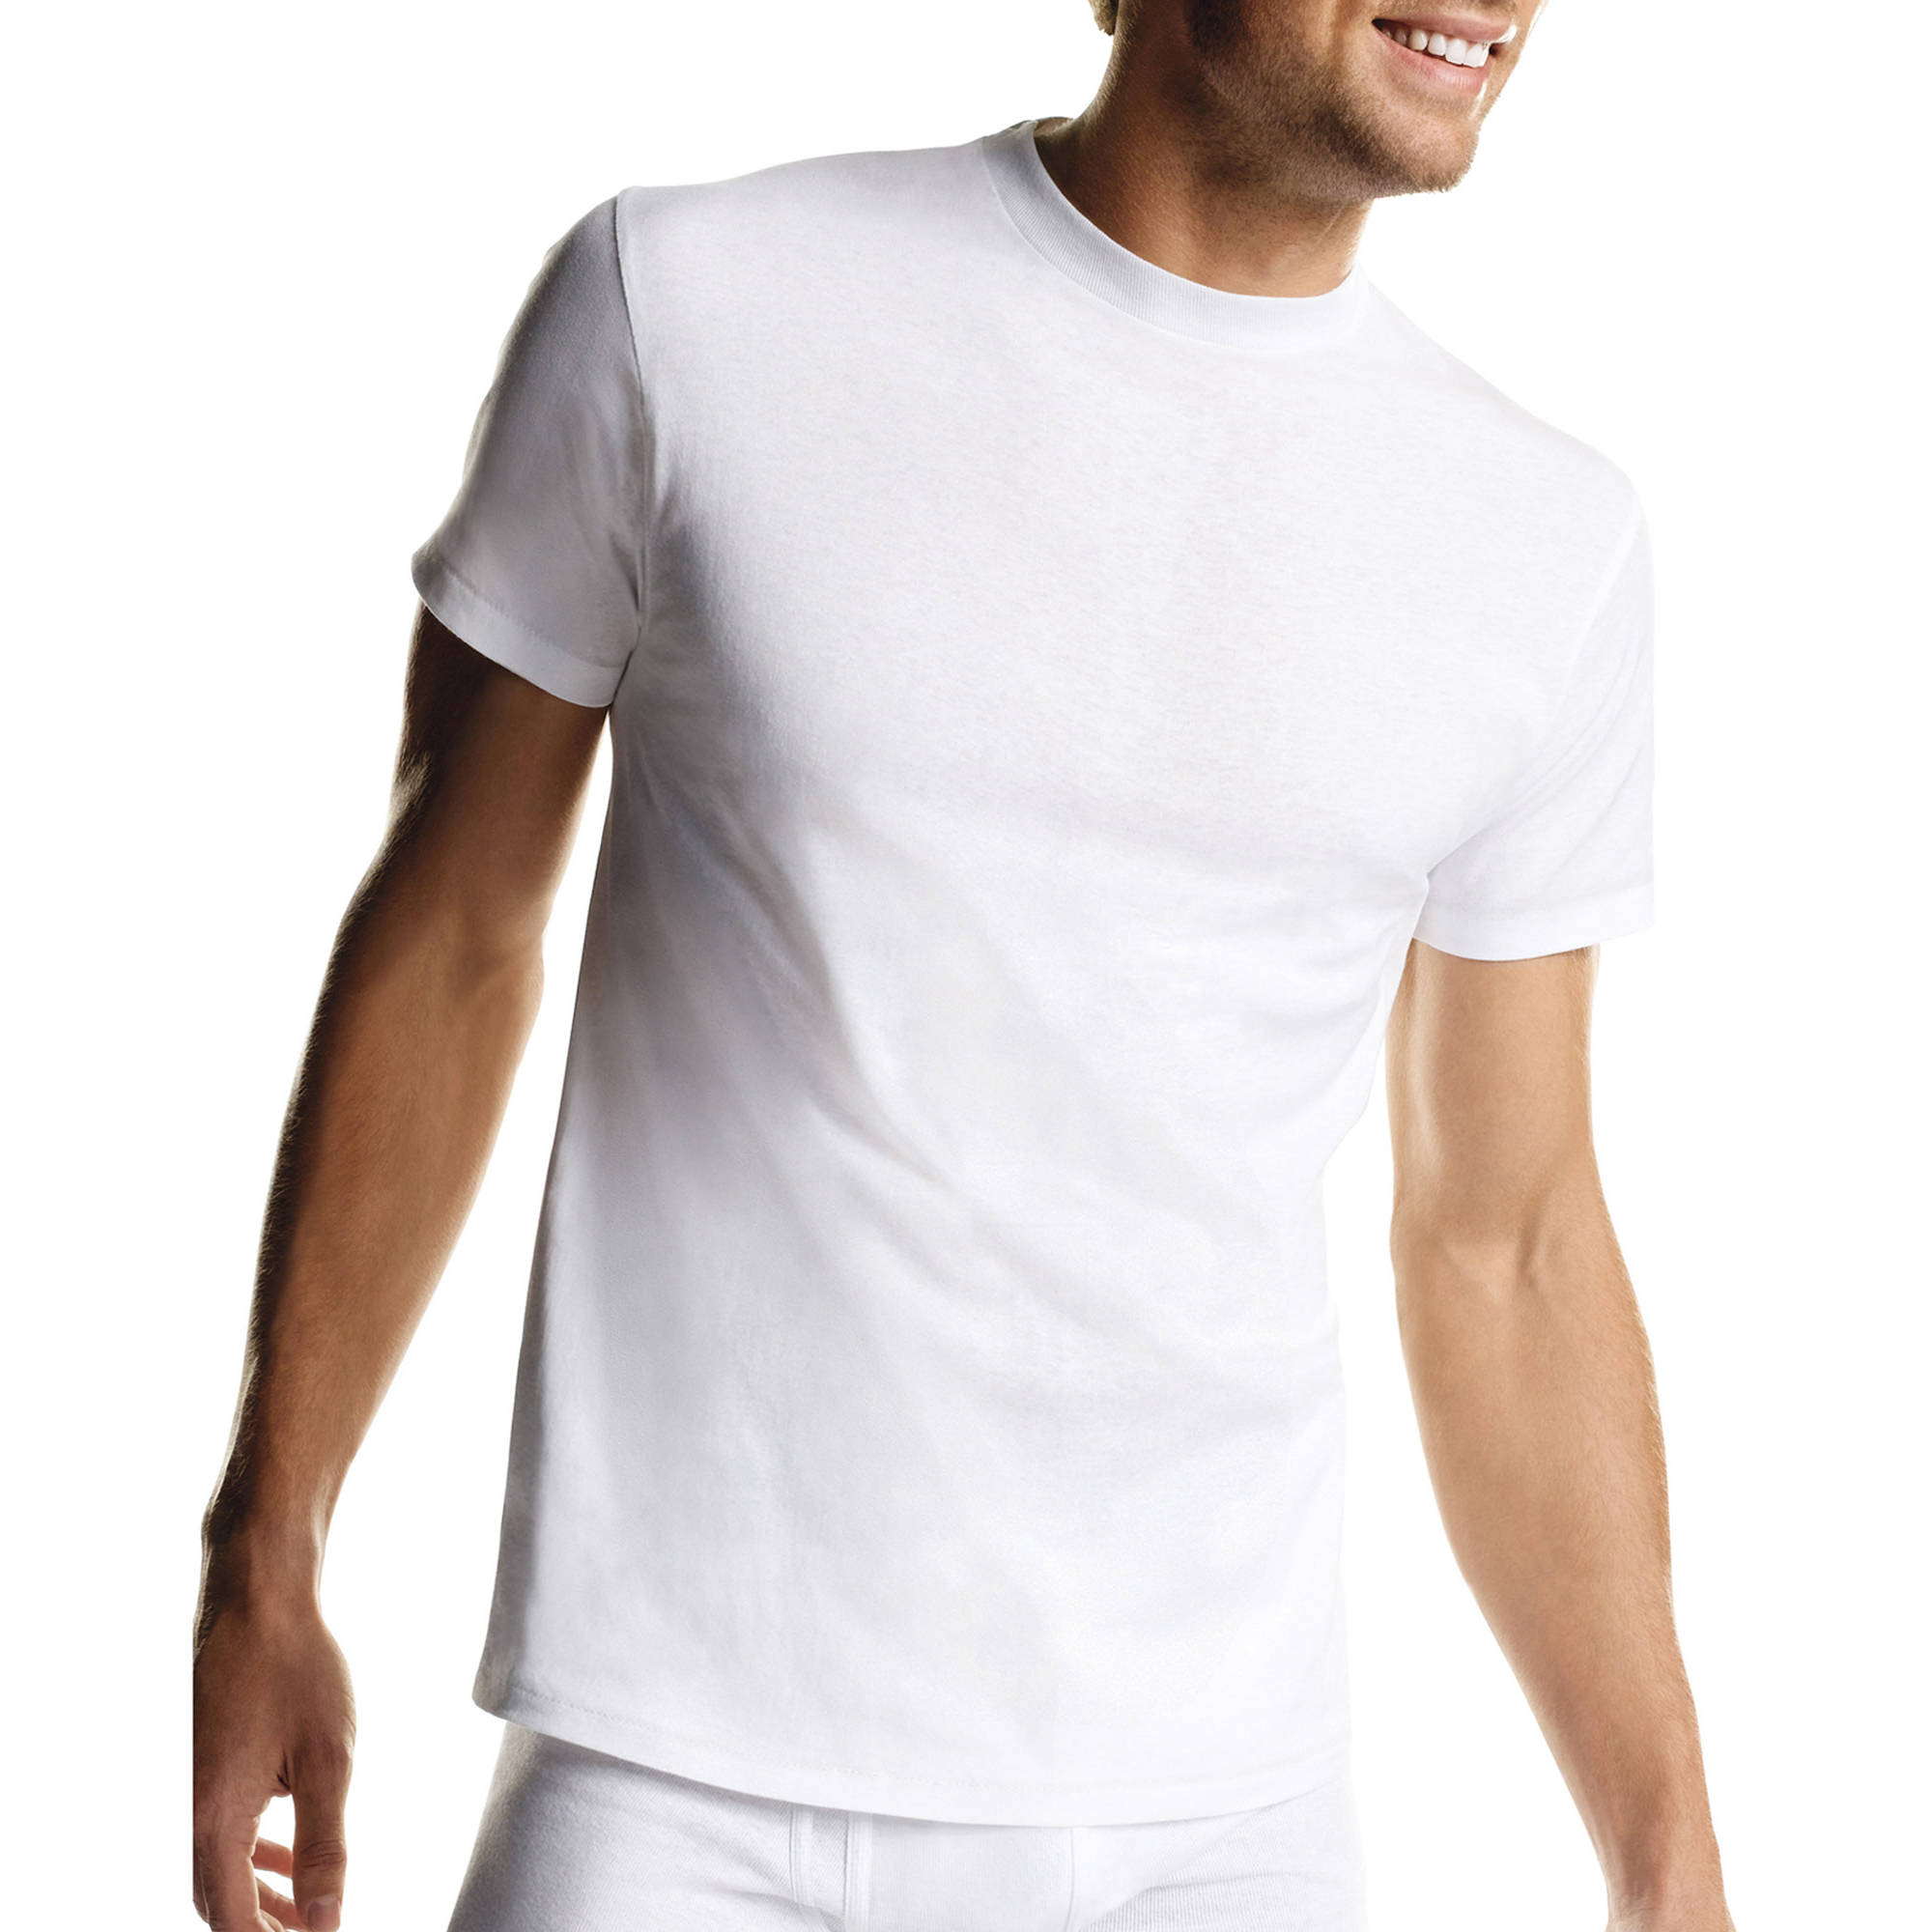 Hanes Men's ComfortSoft White Crew Neck T-Shirt 6 + 3 Free Bonus Pack